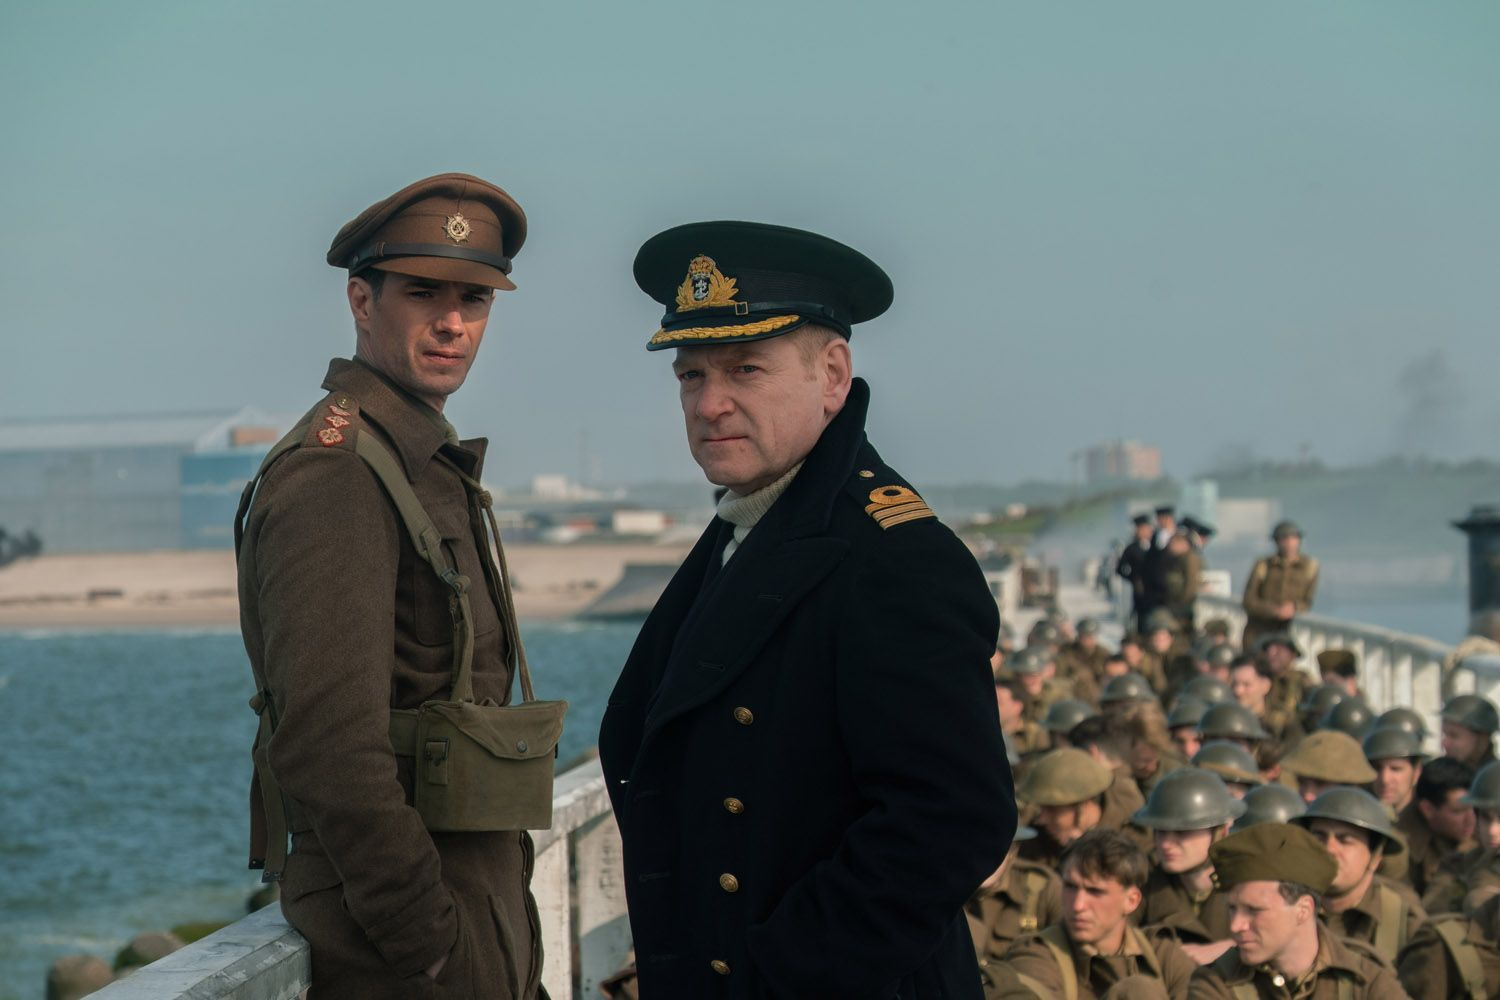 Dunkirk Veteran Reacts on Christopher Nolan's War Movie